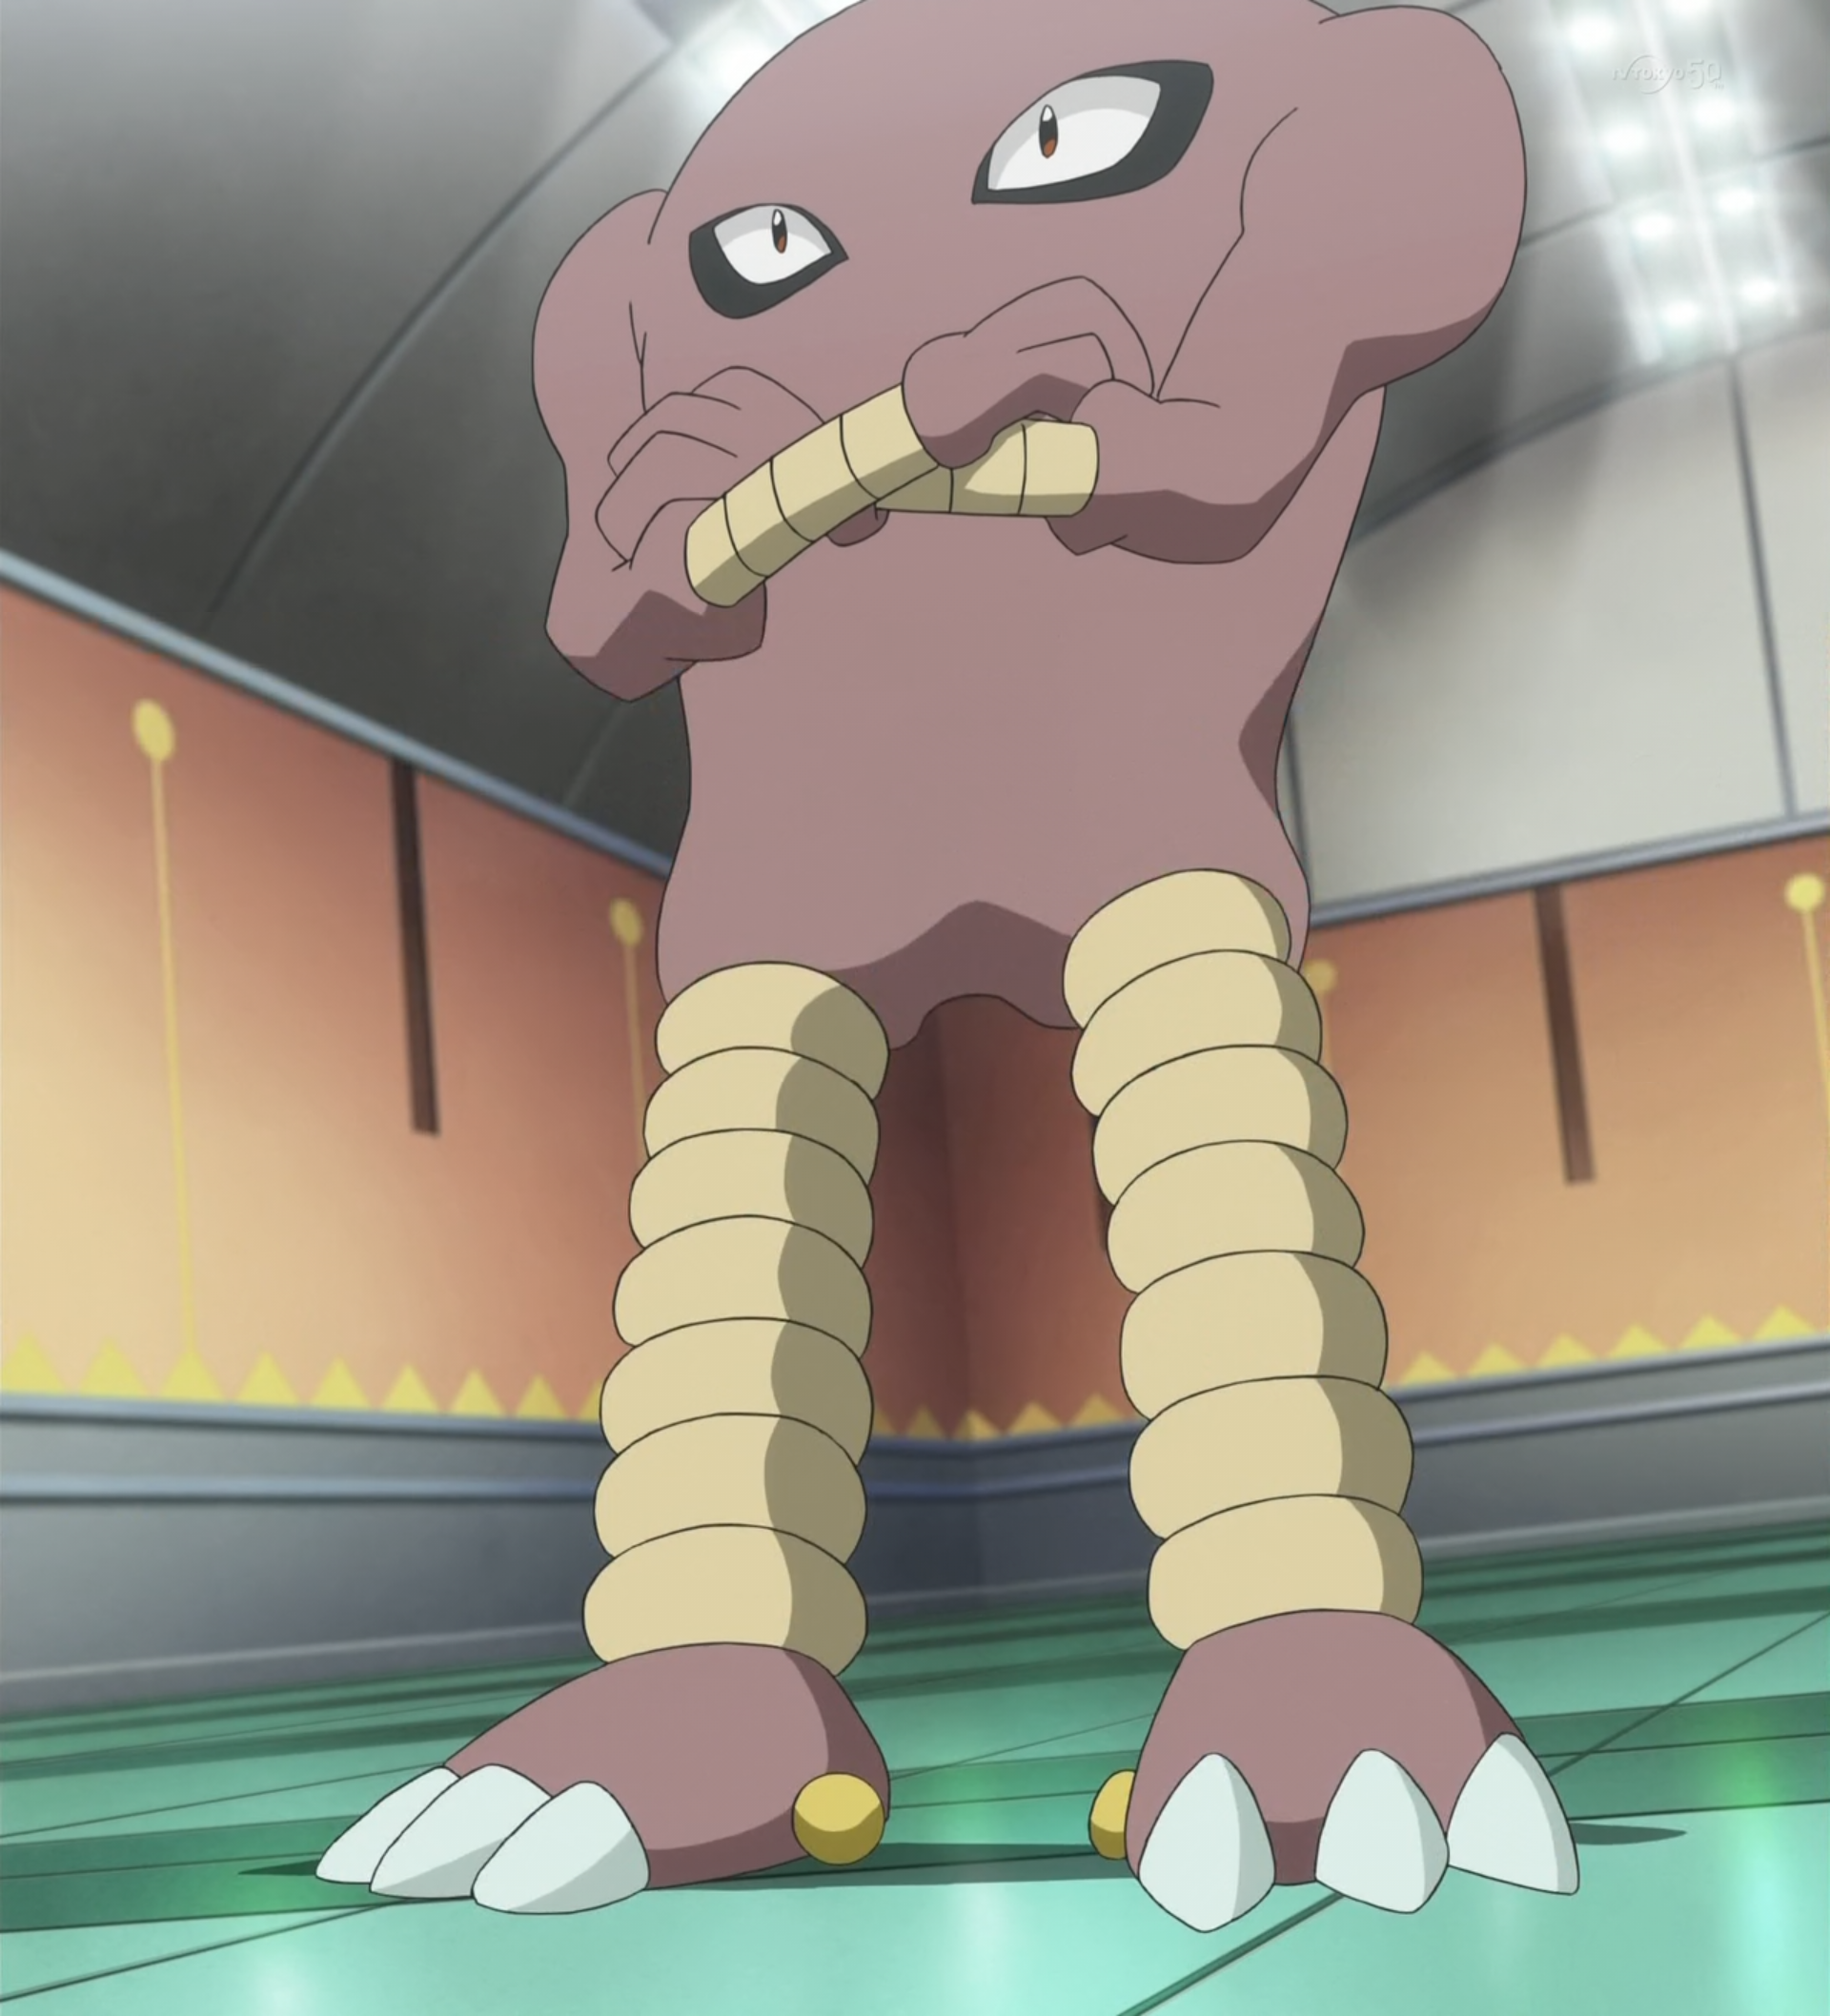 Reds Hitmonlee Pokémon Wiki Fandom Powered By Wikia